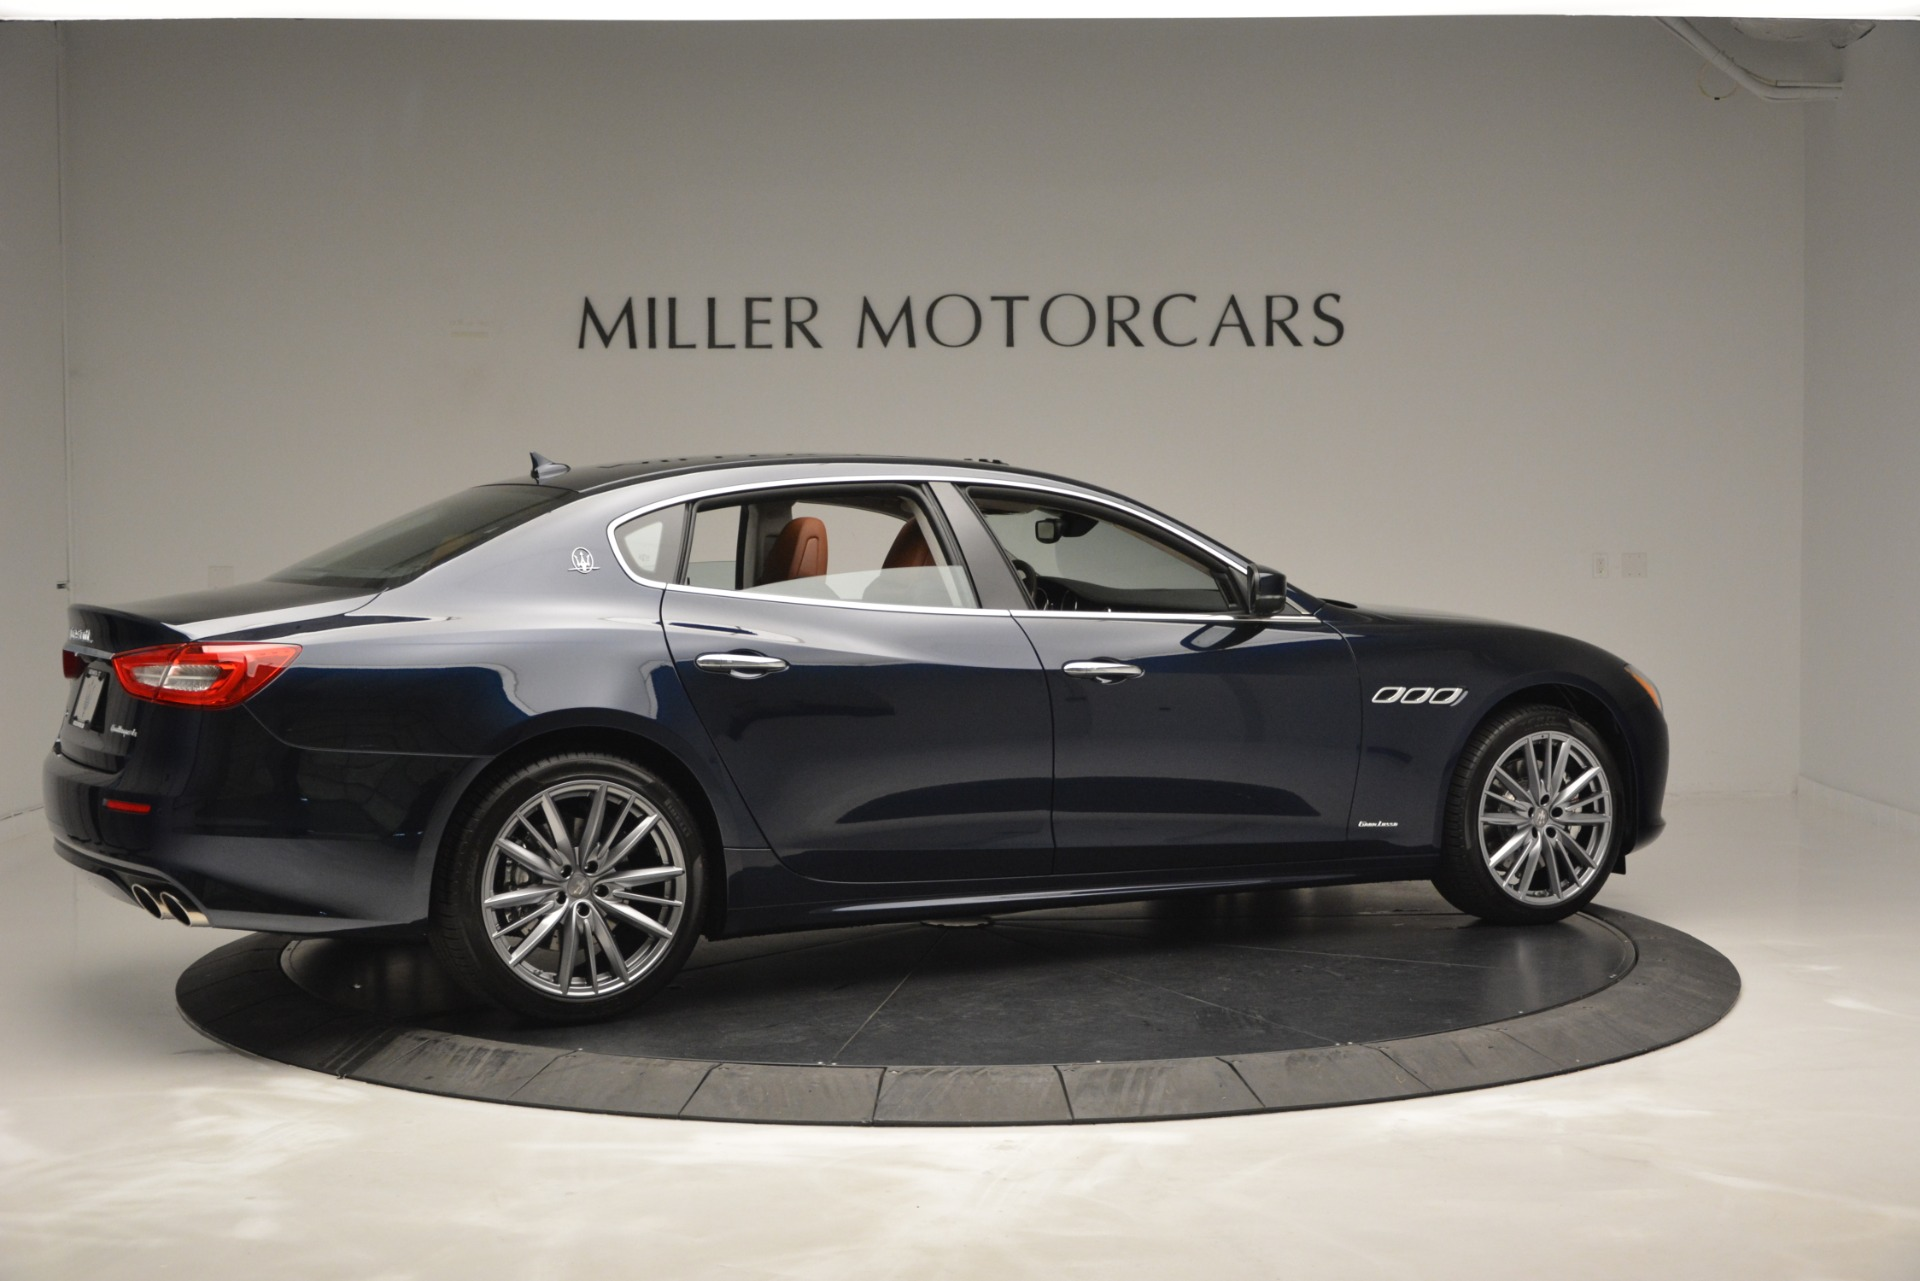 New 2019 Maserati Quattroporte S Q4 GranLusso Edizione Nobile For Sale In Greenwich, CT 2898_p13